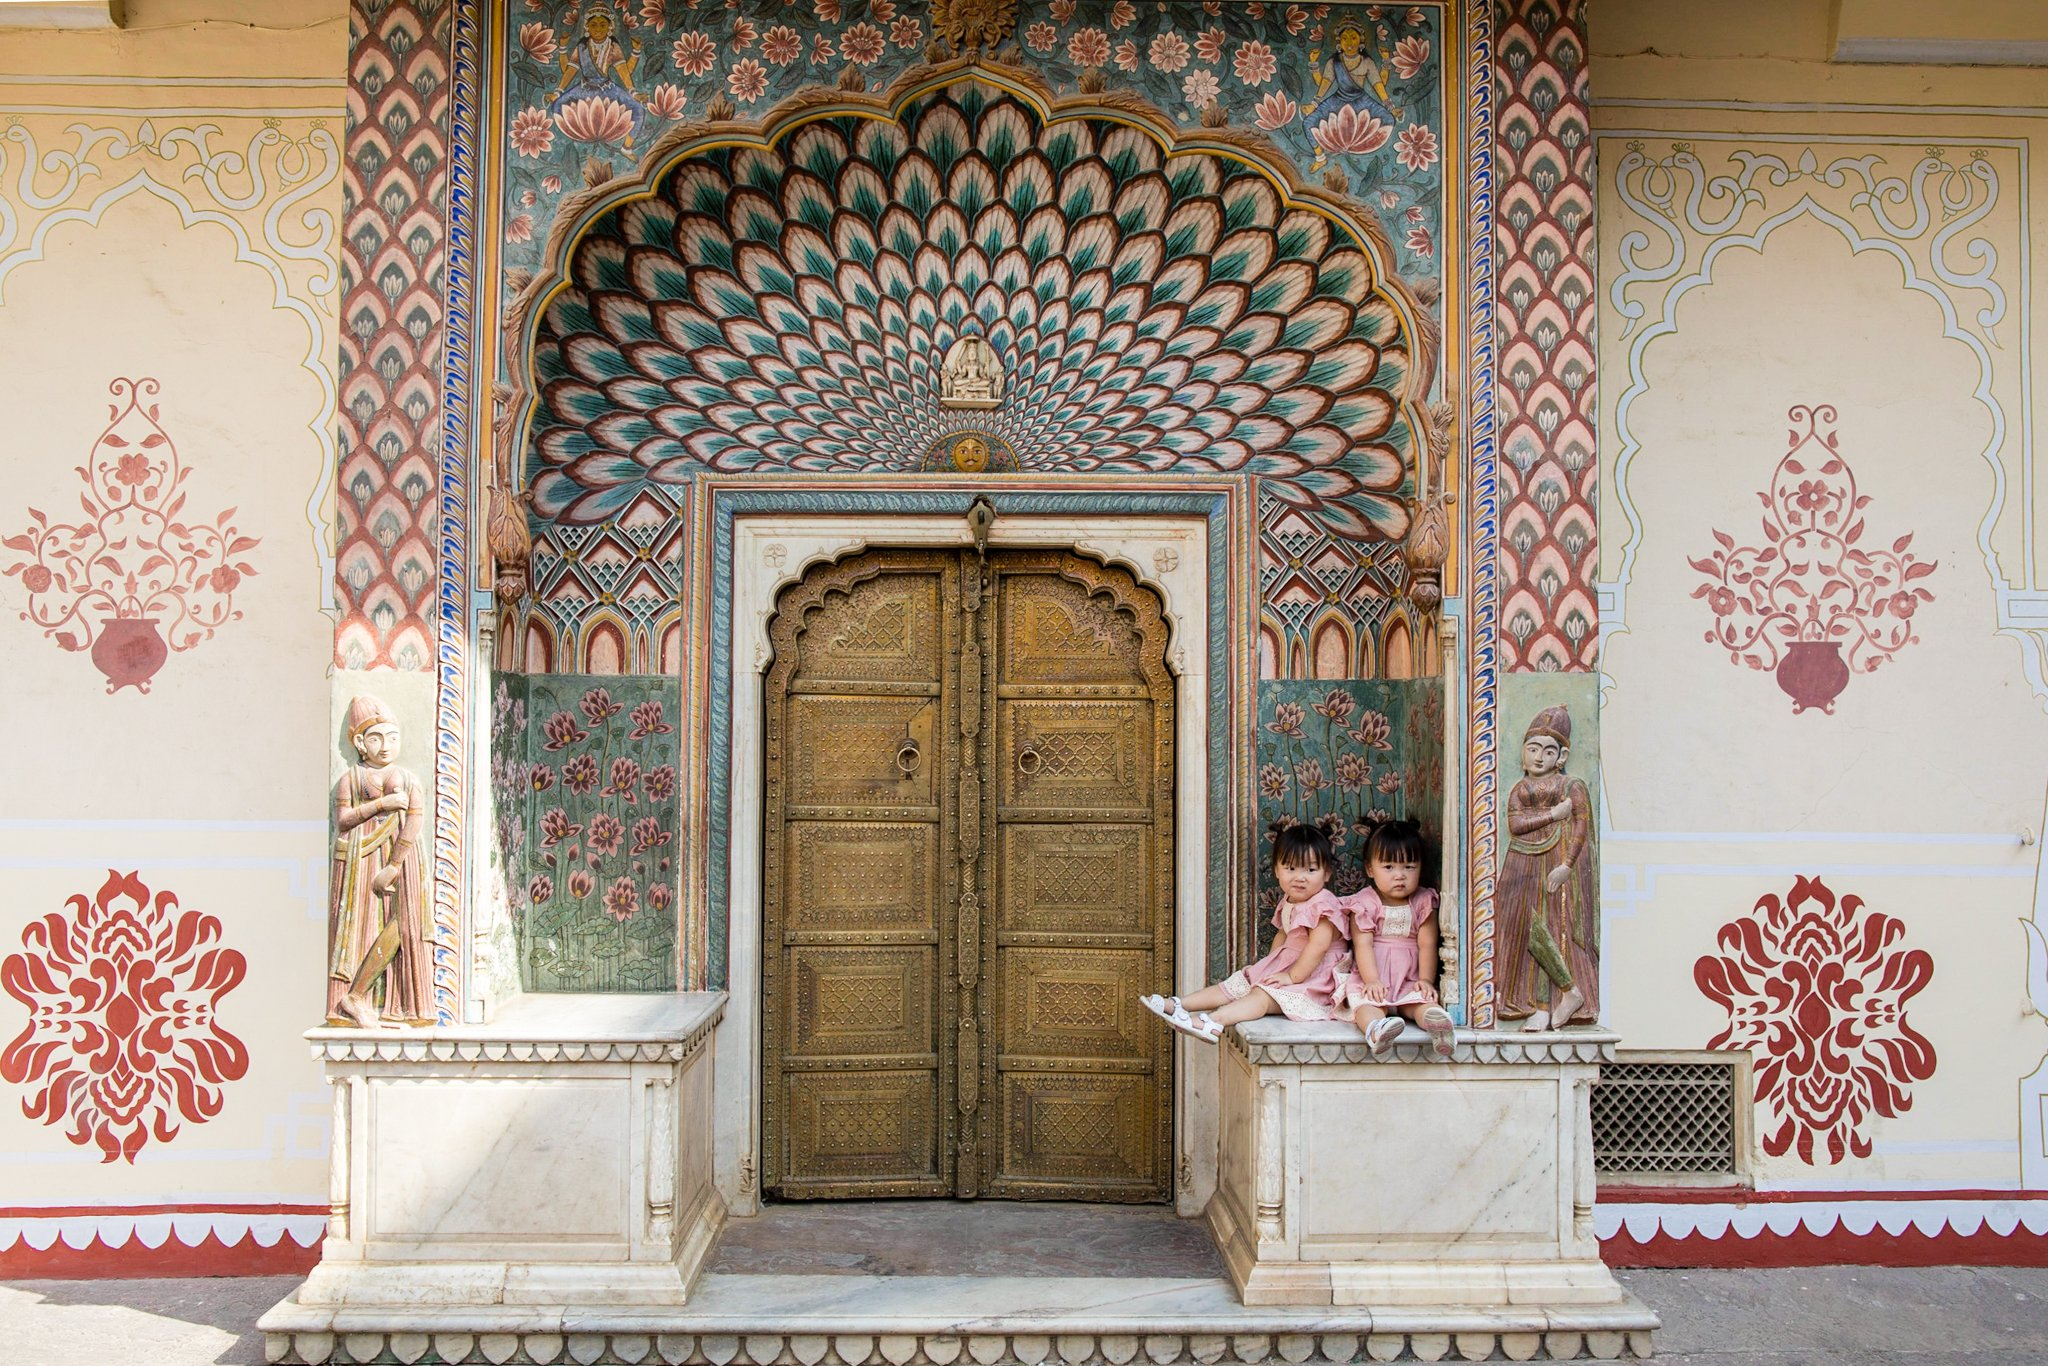 The Lotus Gate in the southwest represents summer and is adorned with dramatic lotus petals and flower patterns.